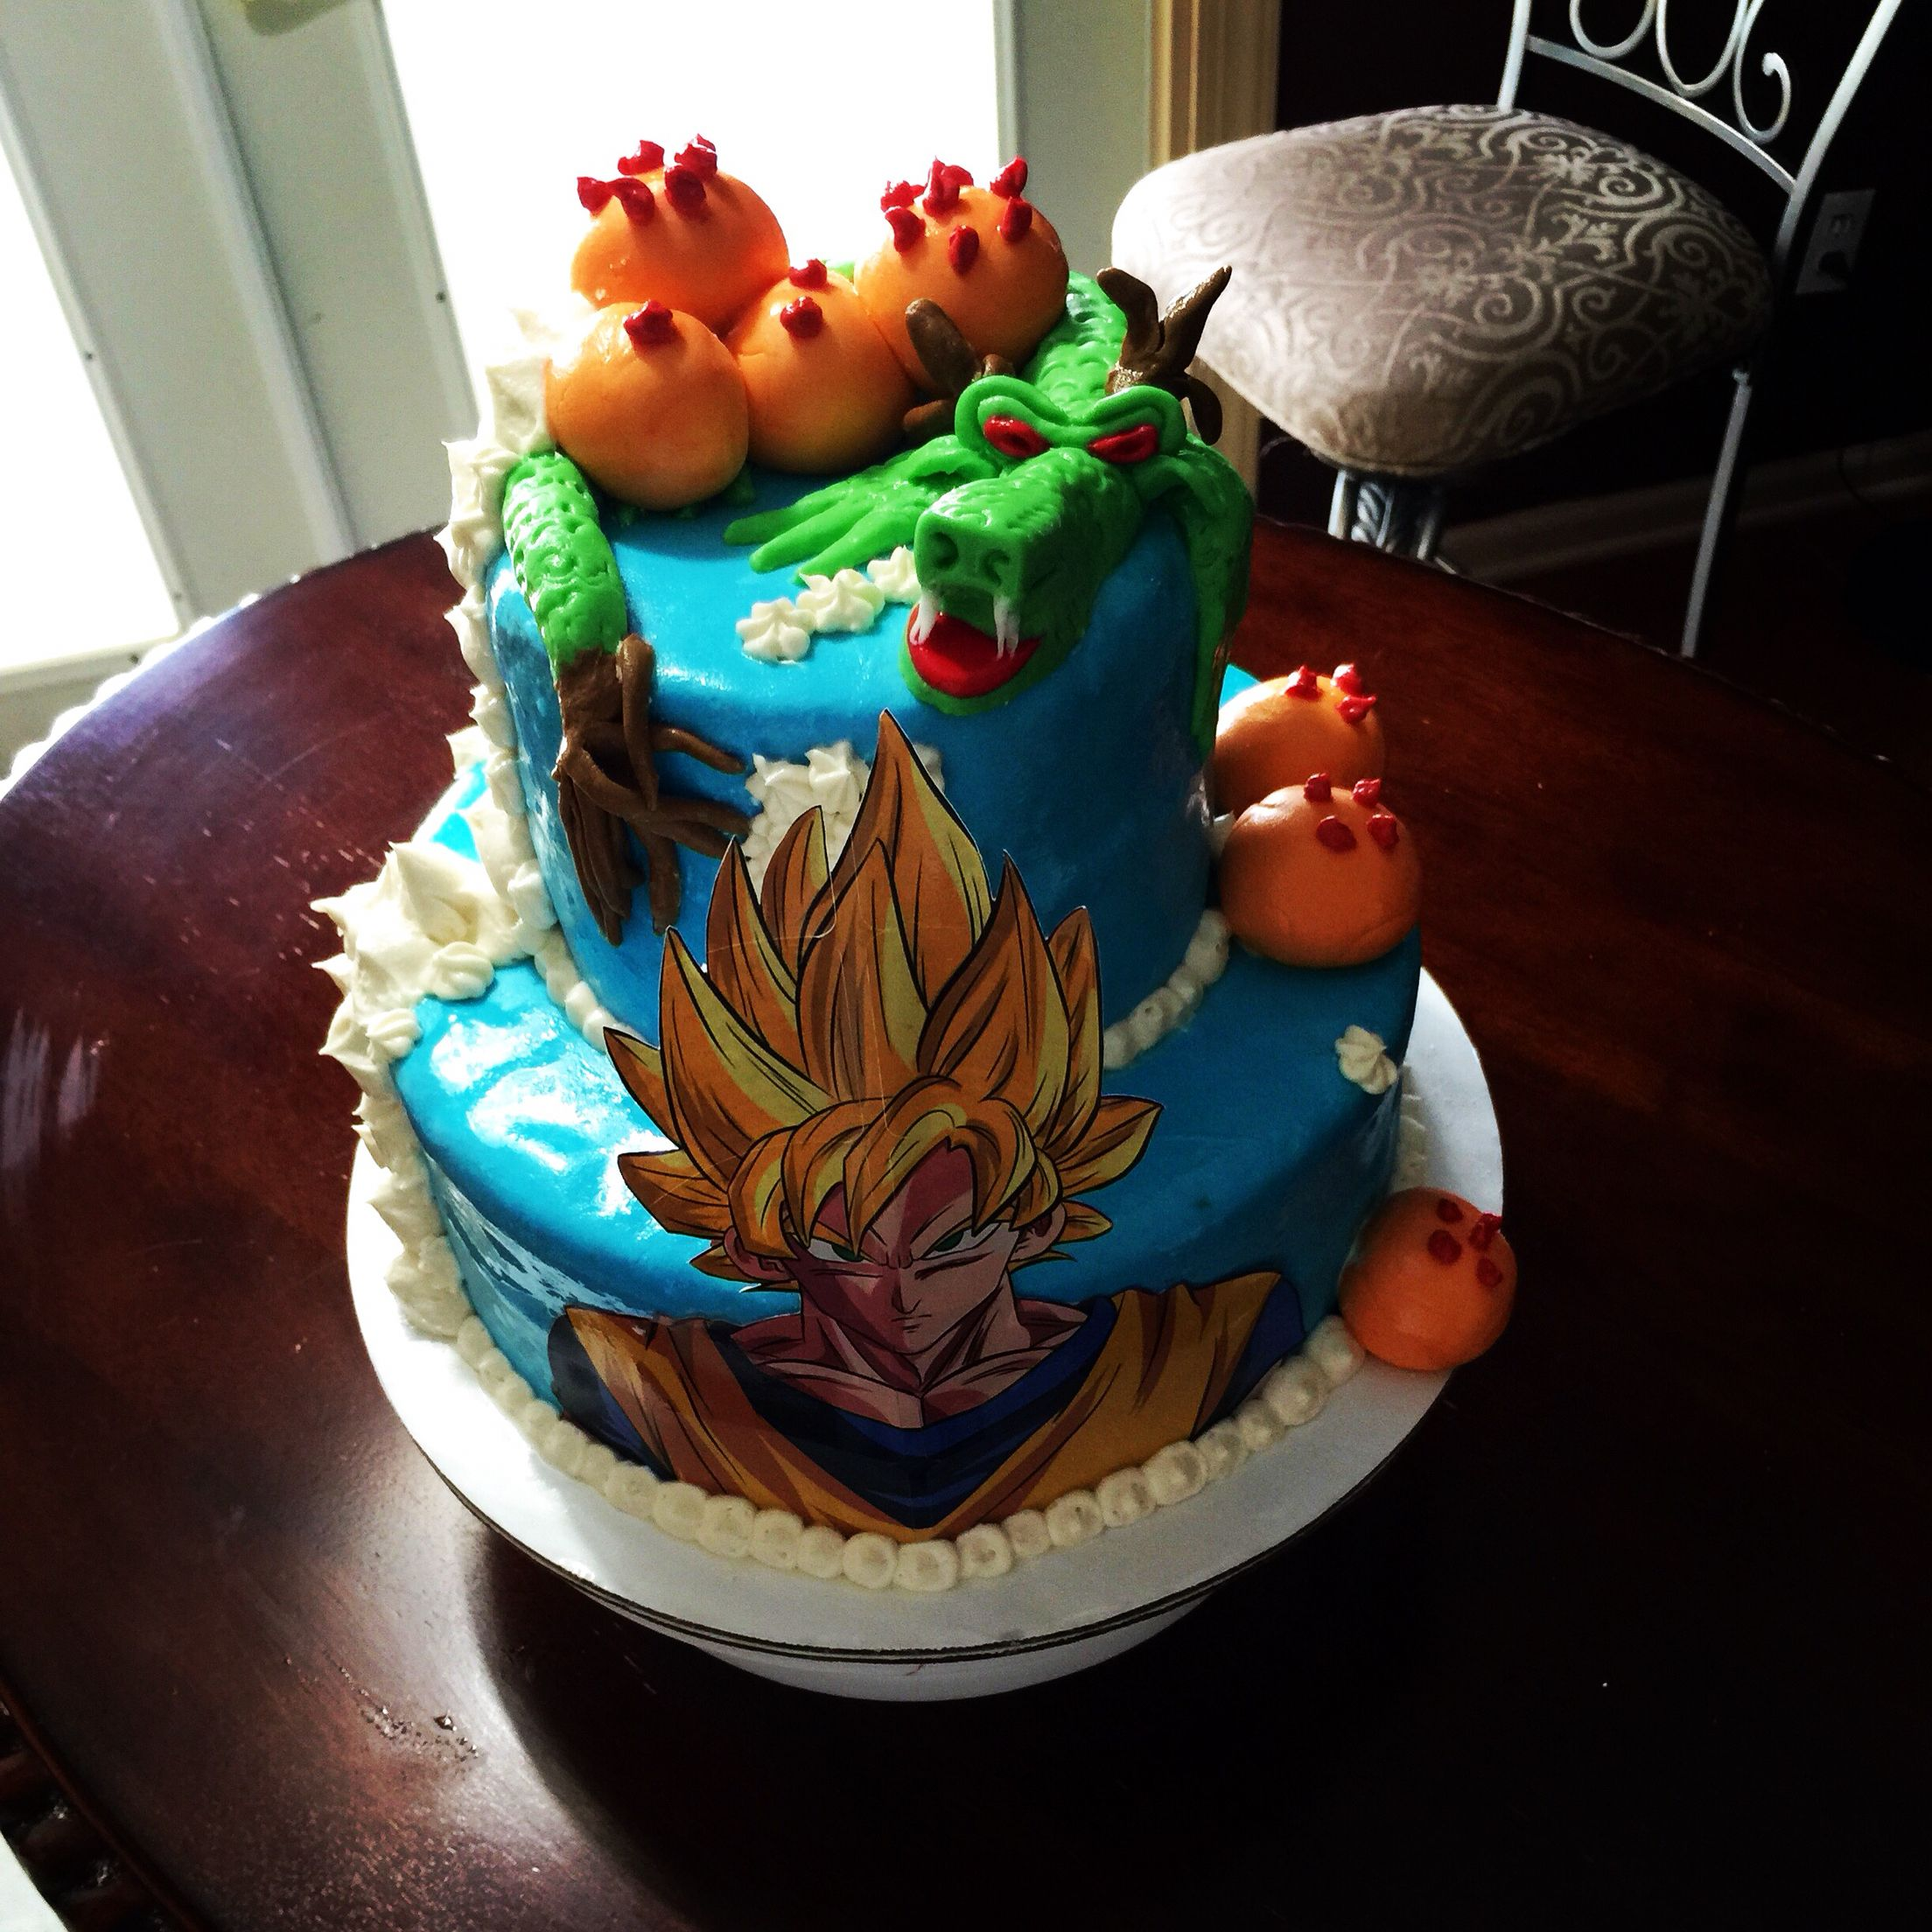 Dragon Ball Z Cake Cakes Ive Baked Pinterest Dragon ball